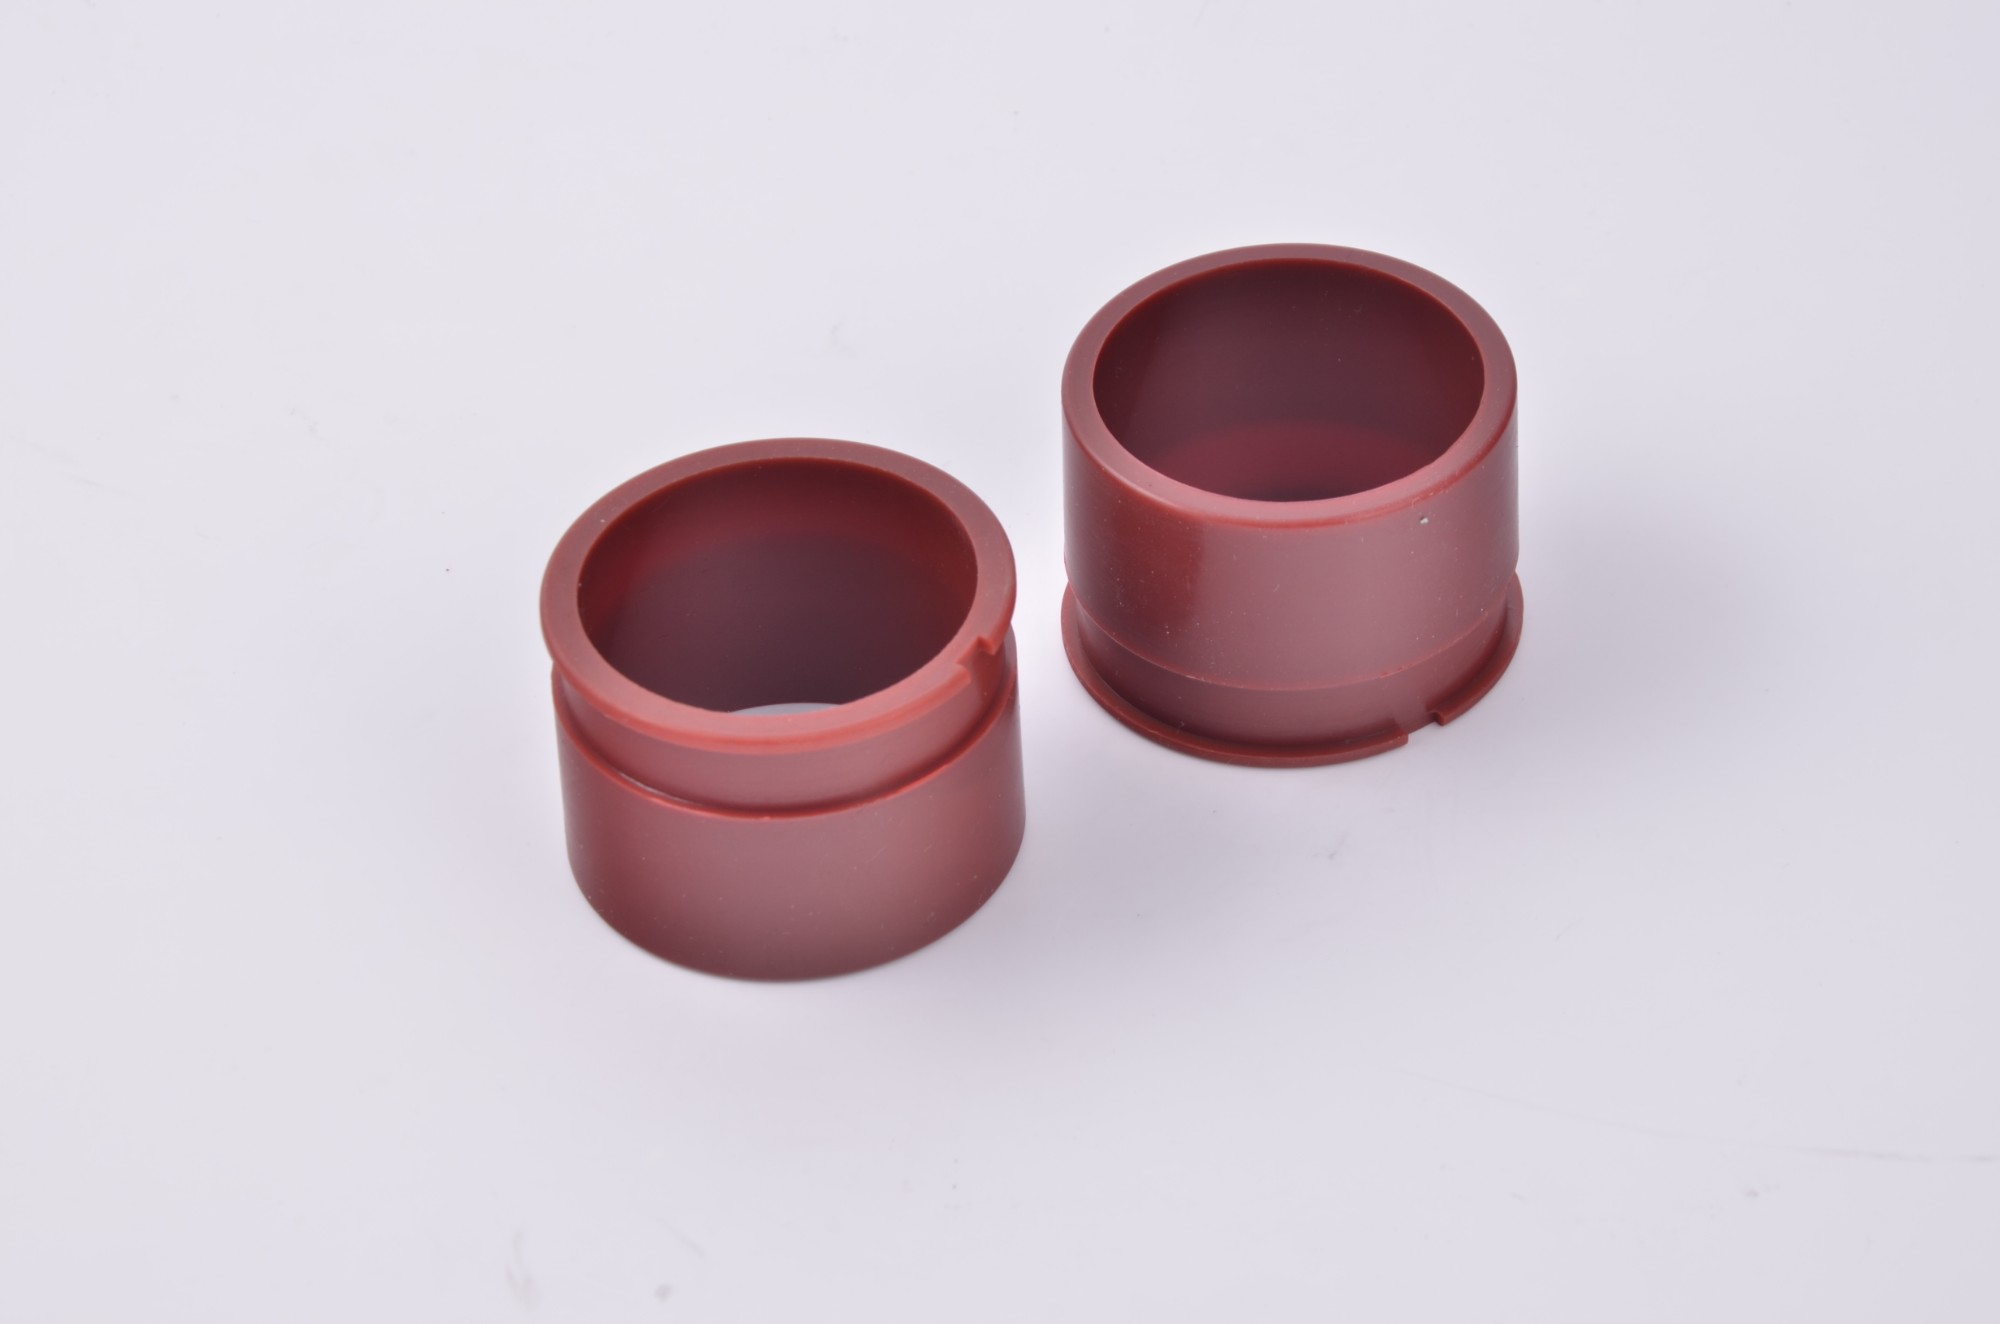 Silicone sheath Manufacturers, Silicone sheath Factory, Silicone sheath